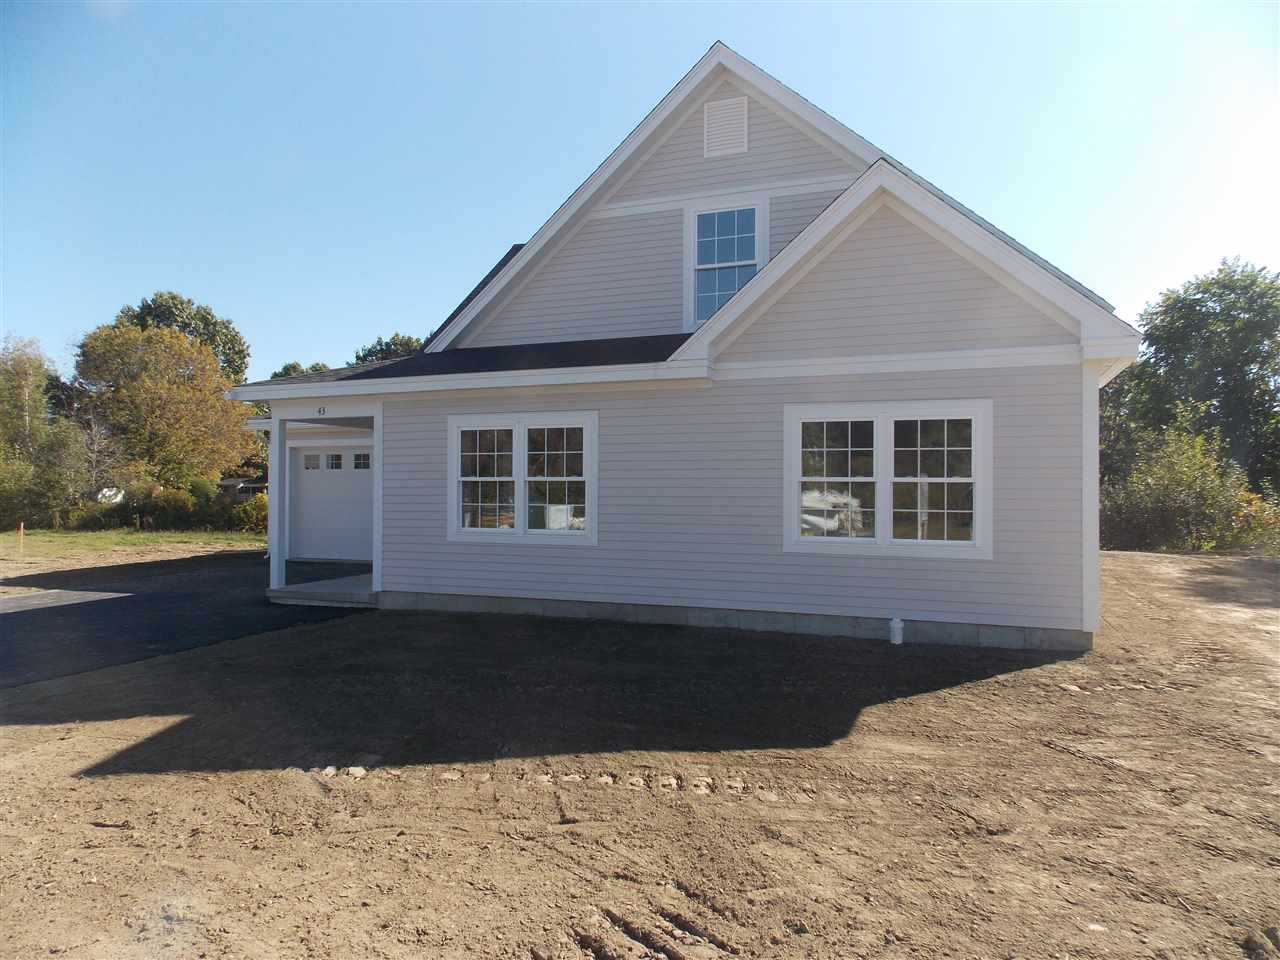 VILLAGE OF WILDER IN TOWN OF HARTFORD VT Home for sale $$339,000 | $149 per sq.ft.